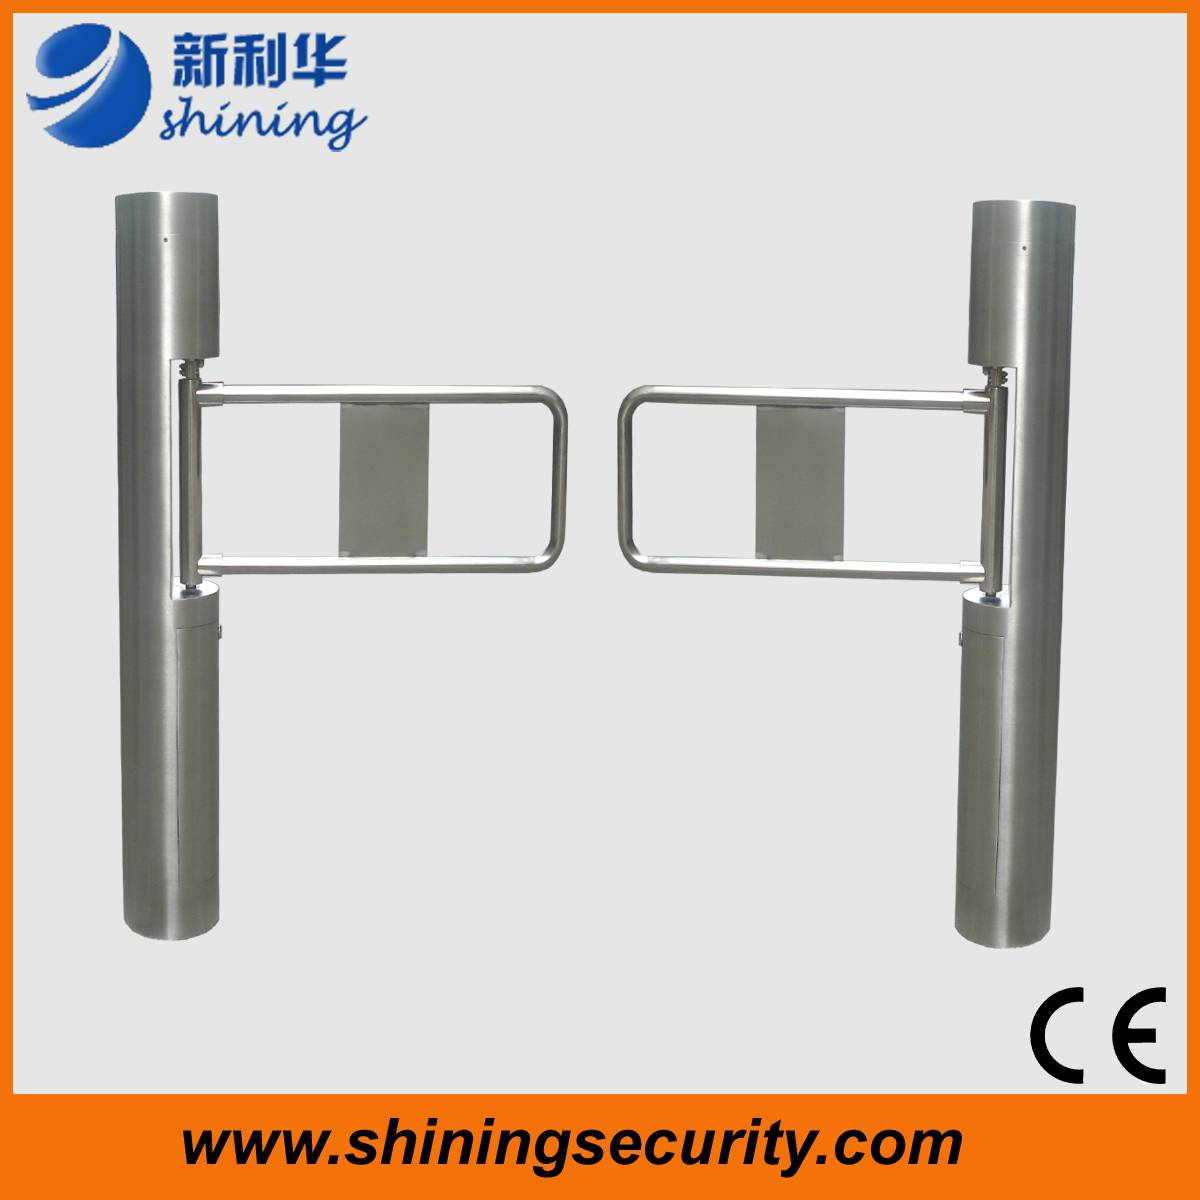 Swing turnstile/swing barrier for RFID access control system with high quality